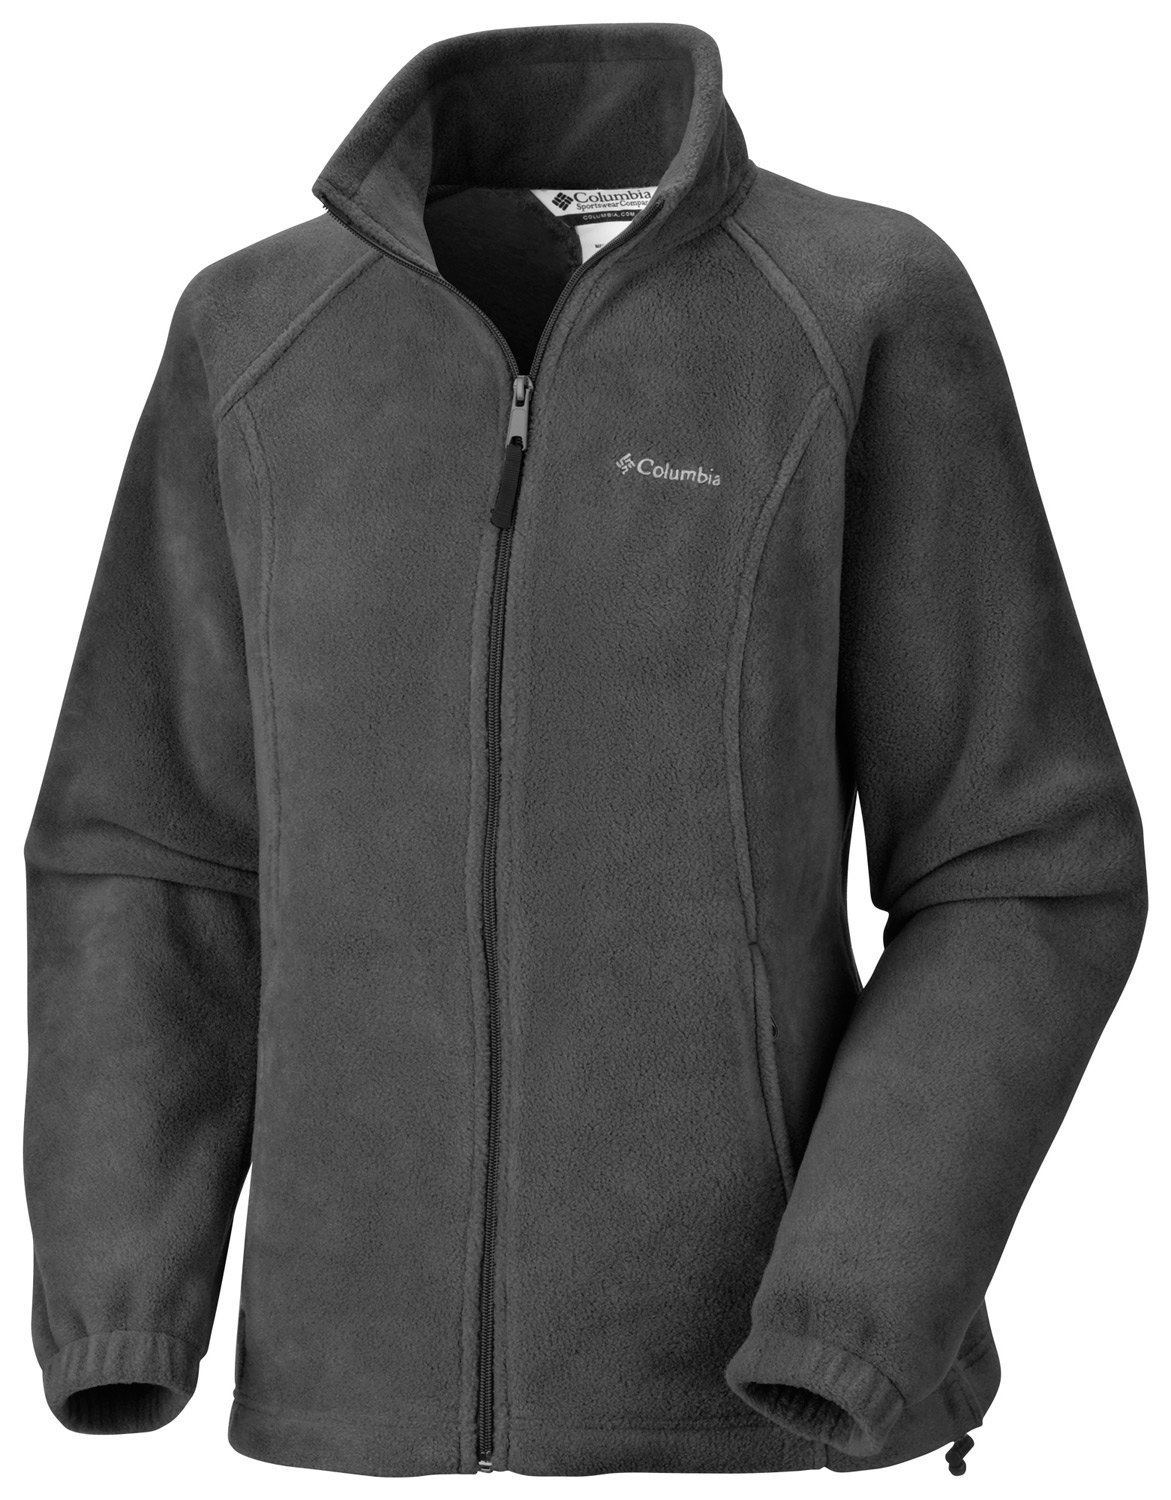 Key Features of the Columbia Benton Springs Full Zip Fleece: FABRIC 100% polyester MTR filament fleece 250g. FIT Modern Classic Interior drawcord Zippered hand pockets - $39.95